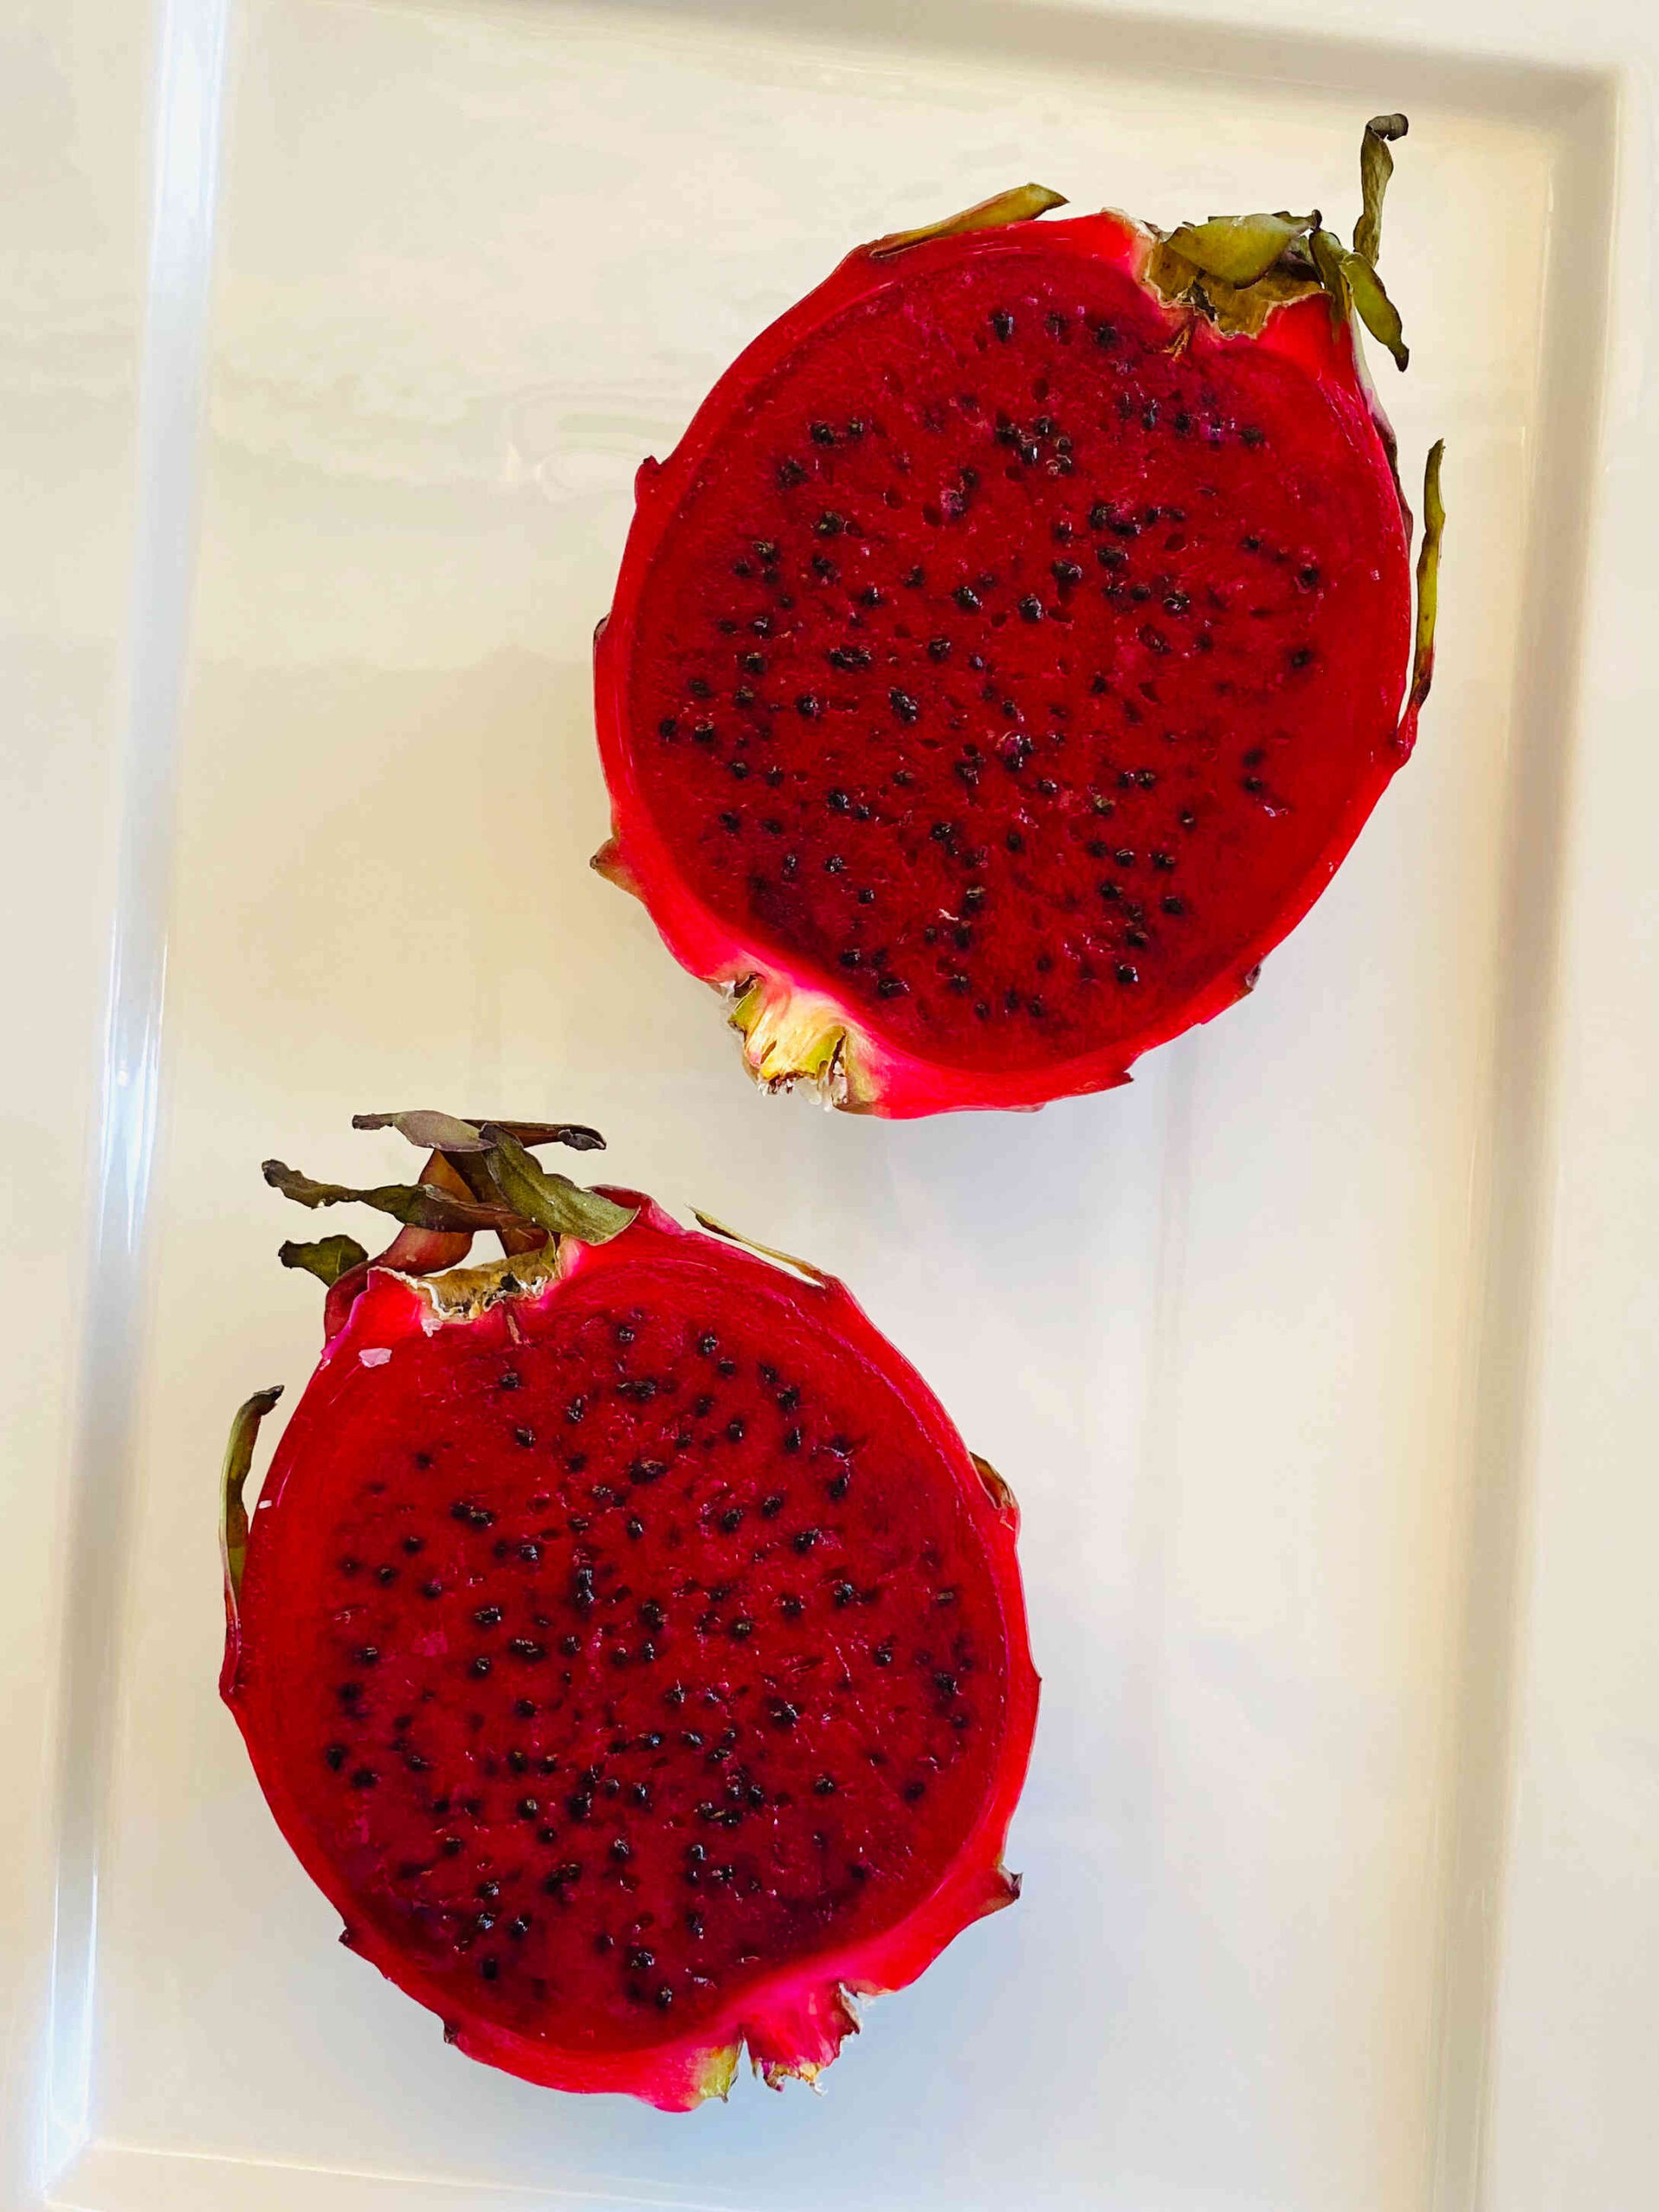 red dragon fruit sliced in half on a white rectangular plate